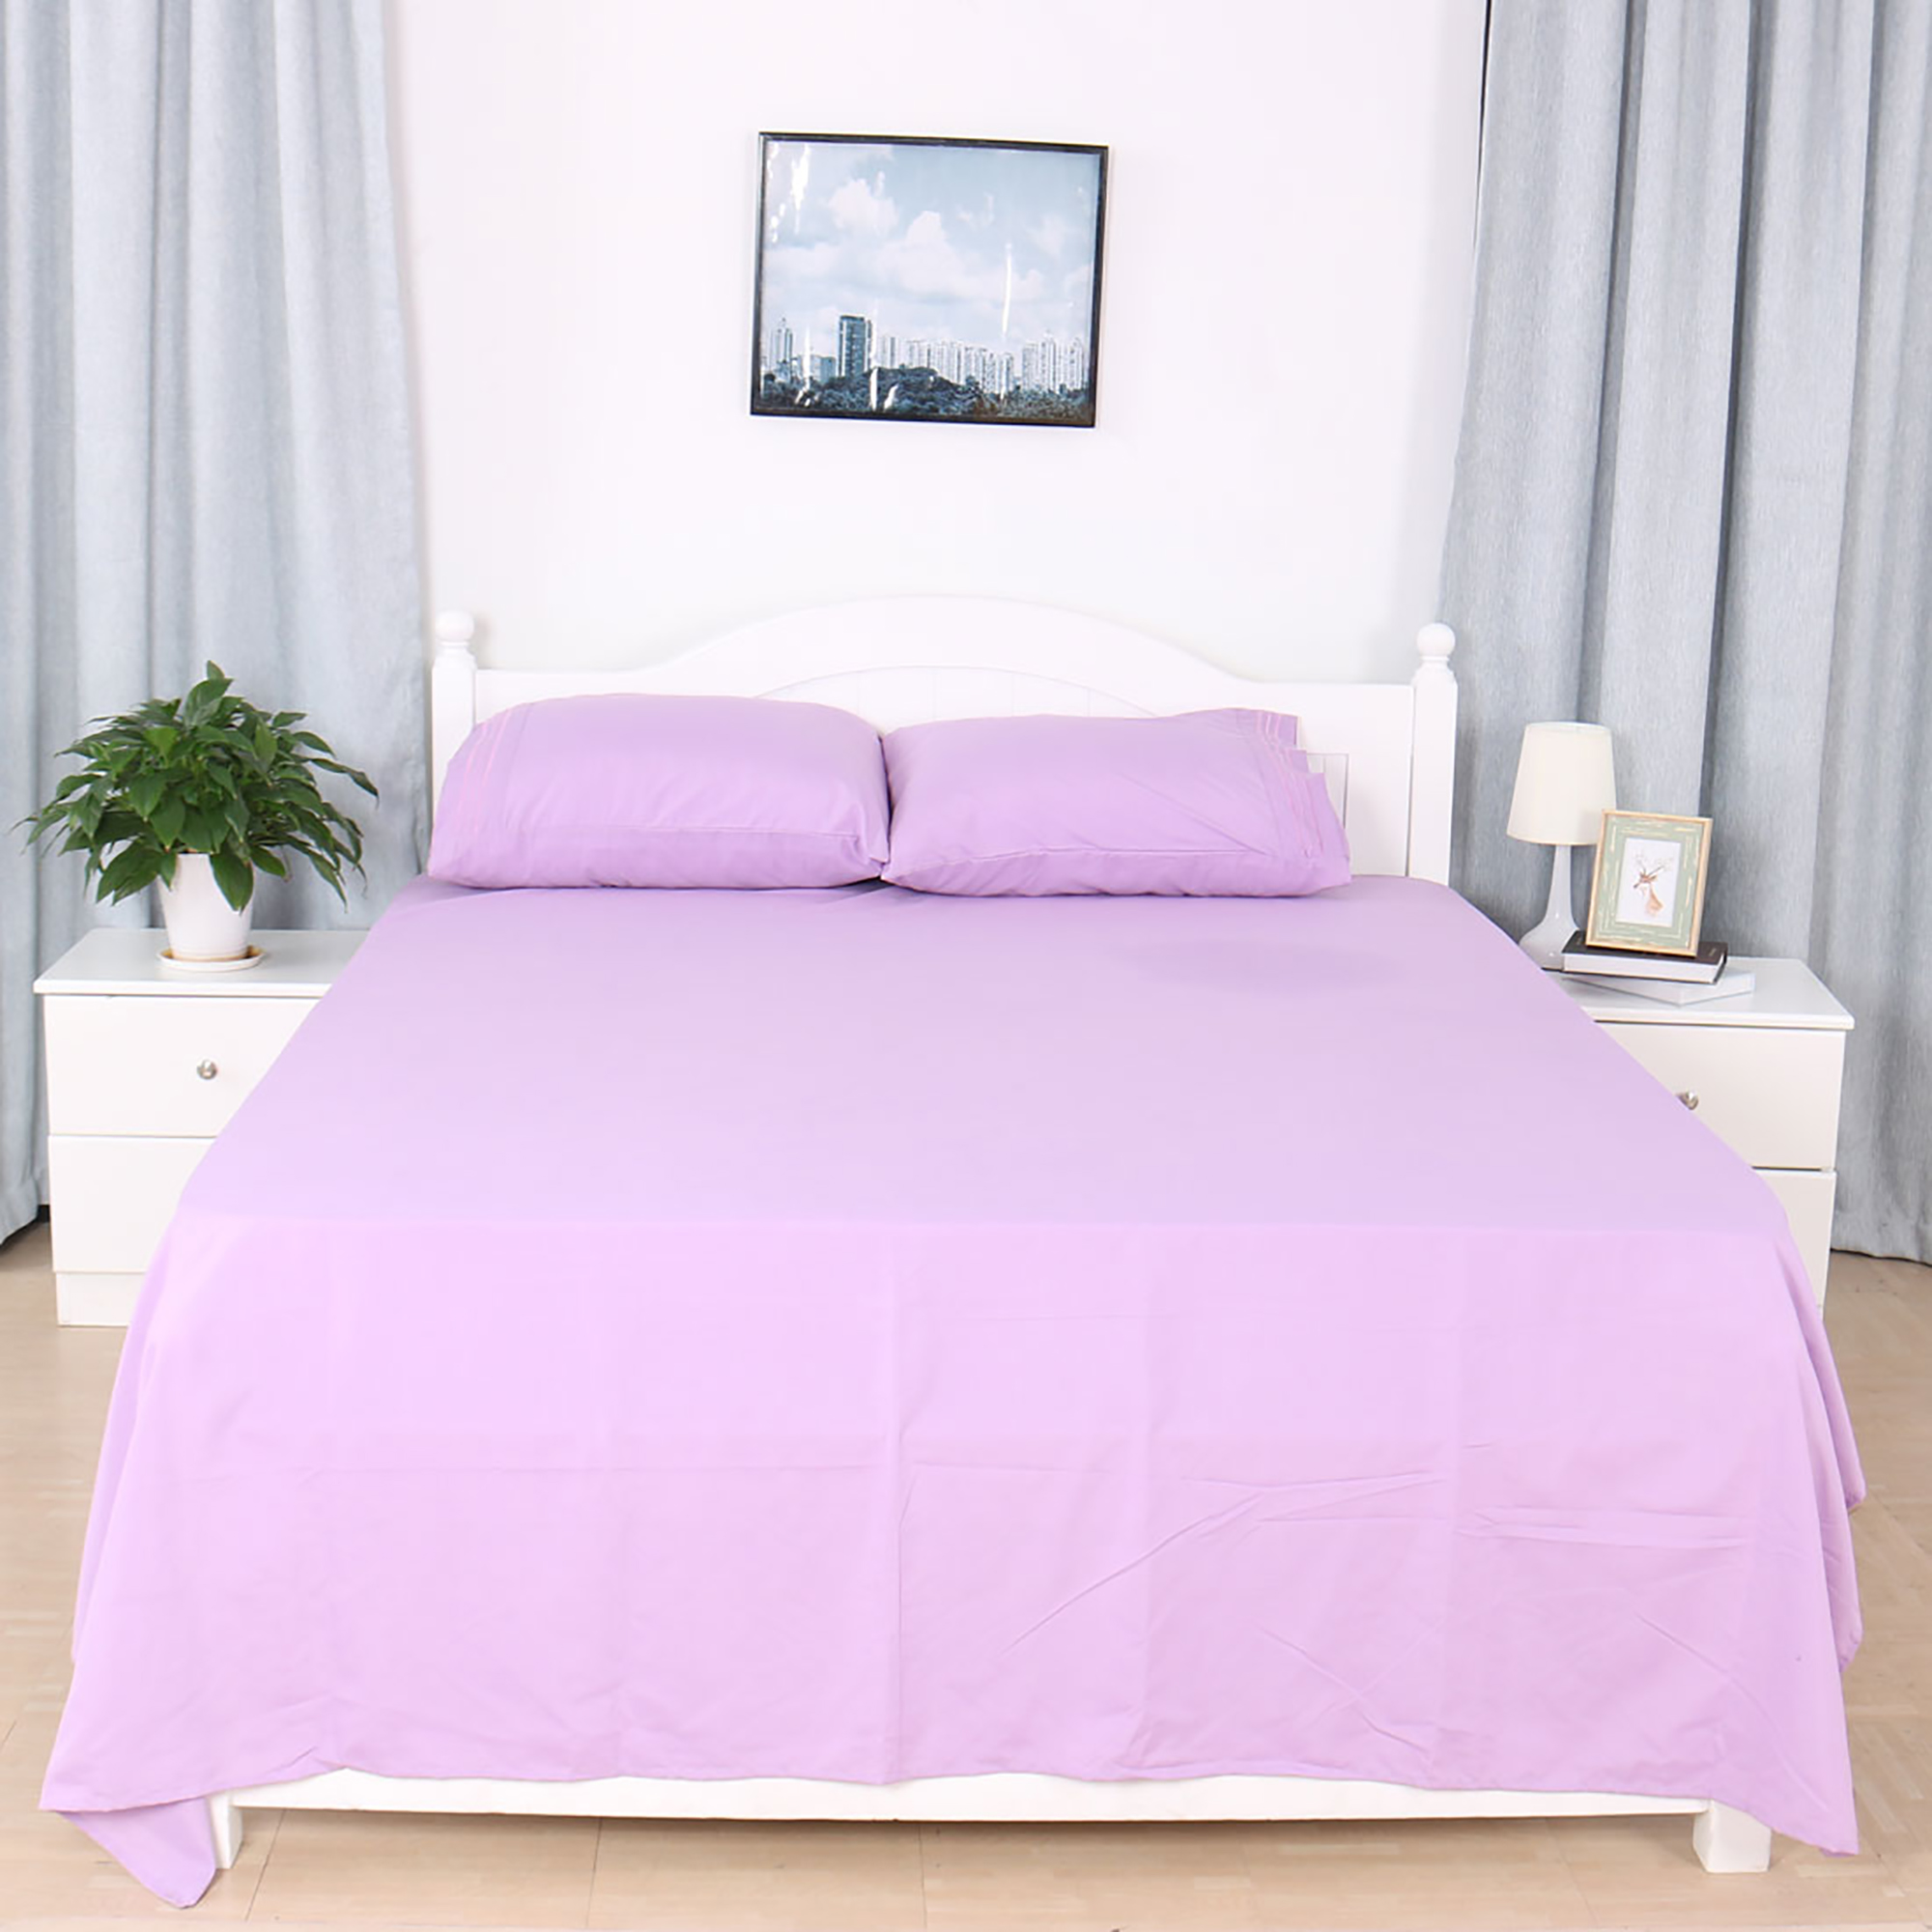 Piccocasa 1800tc Microfiber Pillowcases Flat And Fitted Sheet Bedding Set Light Purple Twin Walmart Com Walmart Com